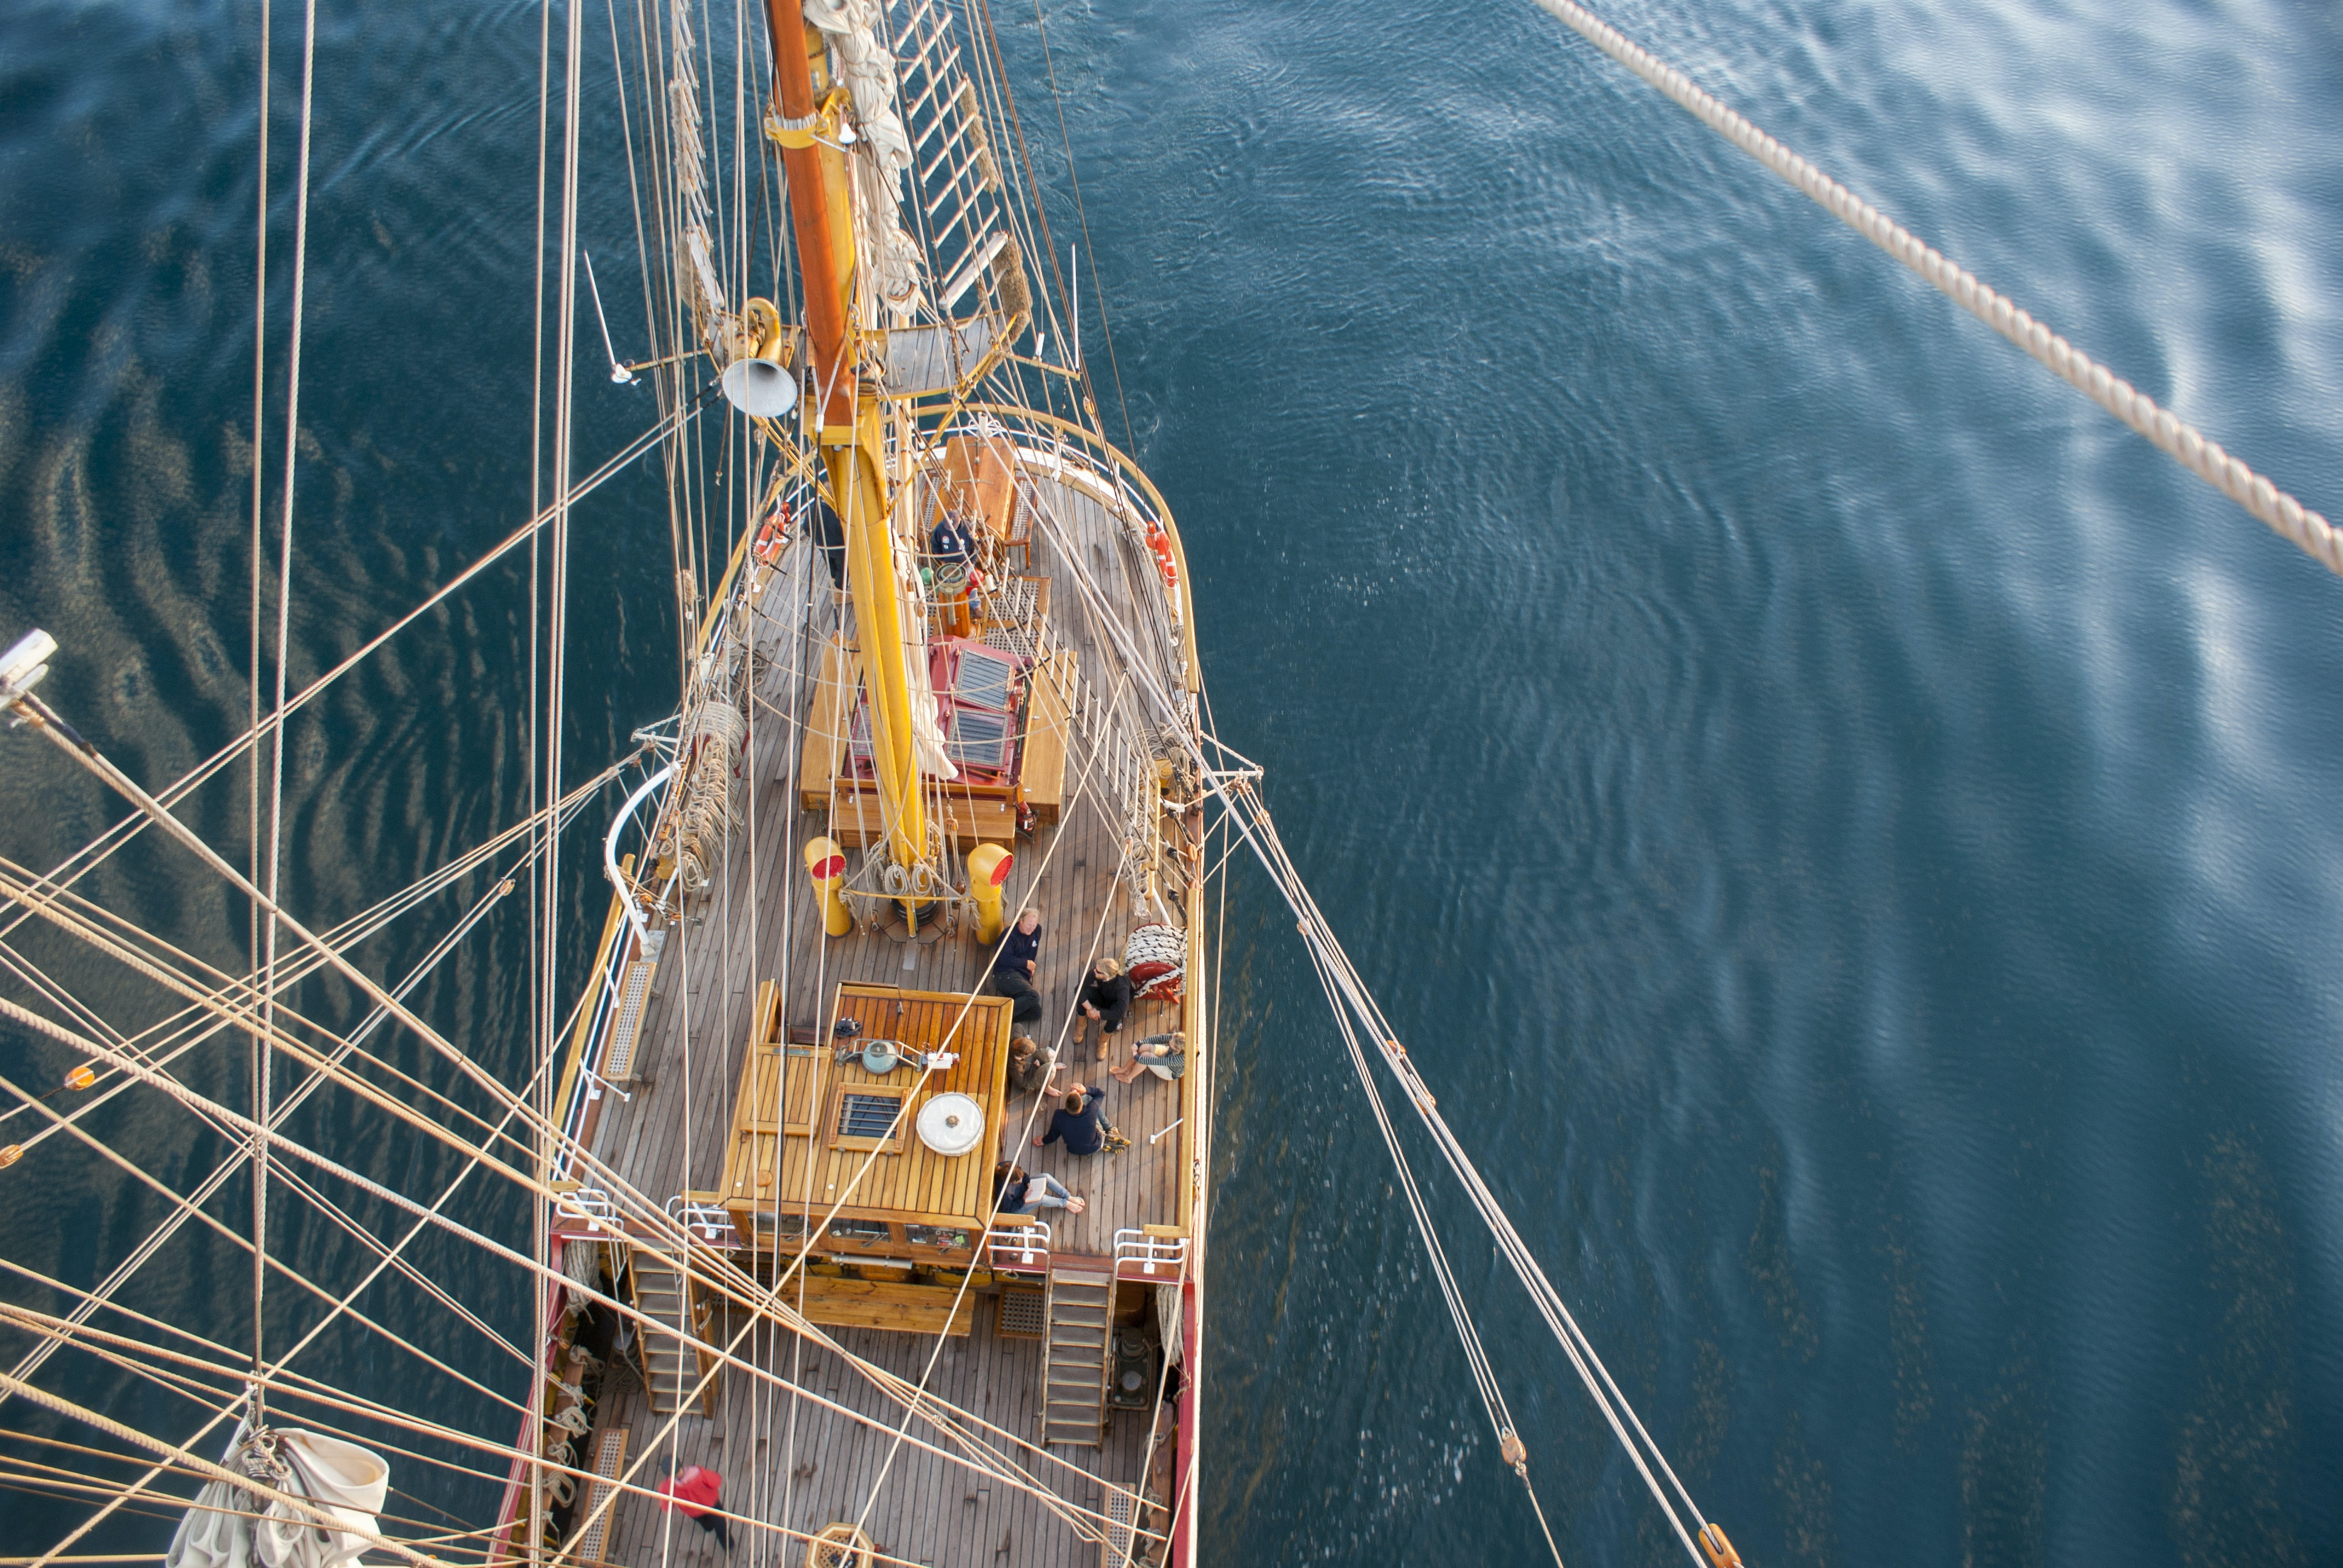 aerial photography of ship on calm body of water at daytime